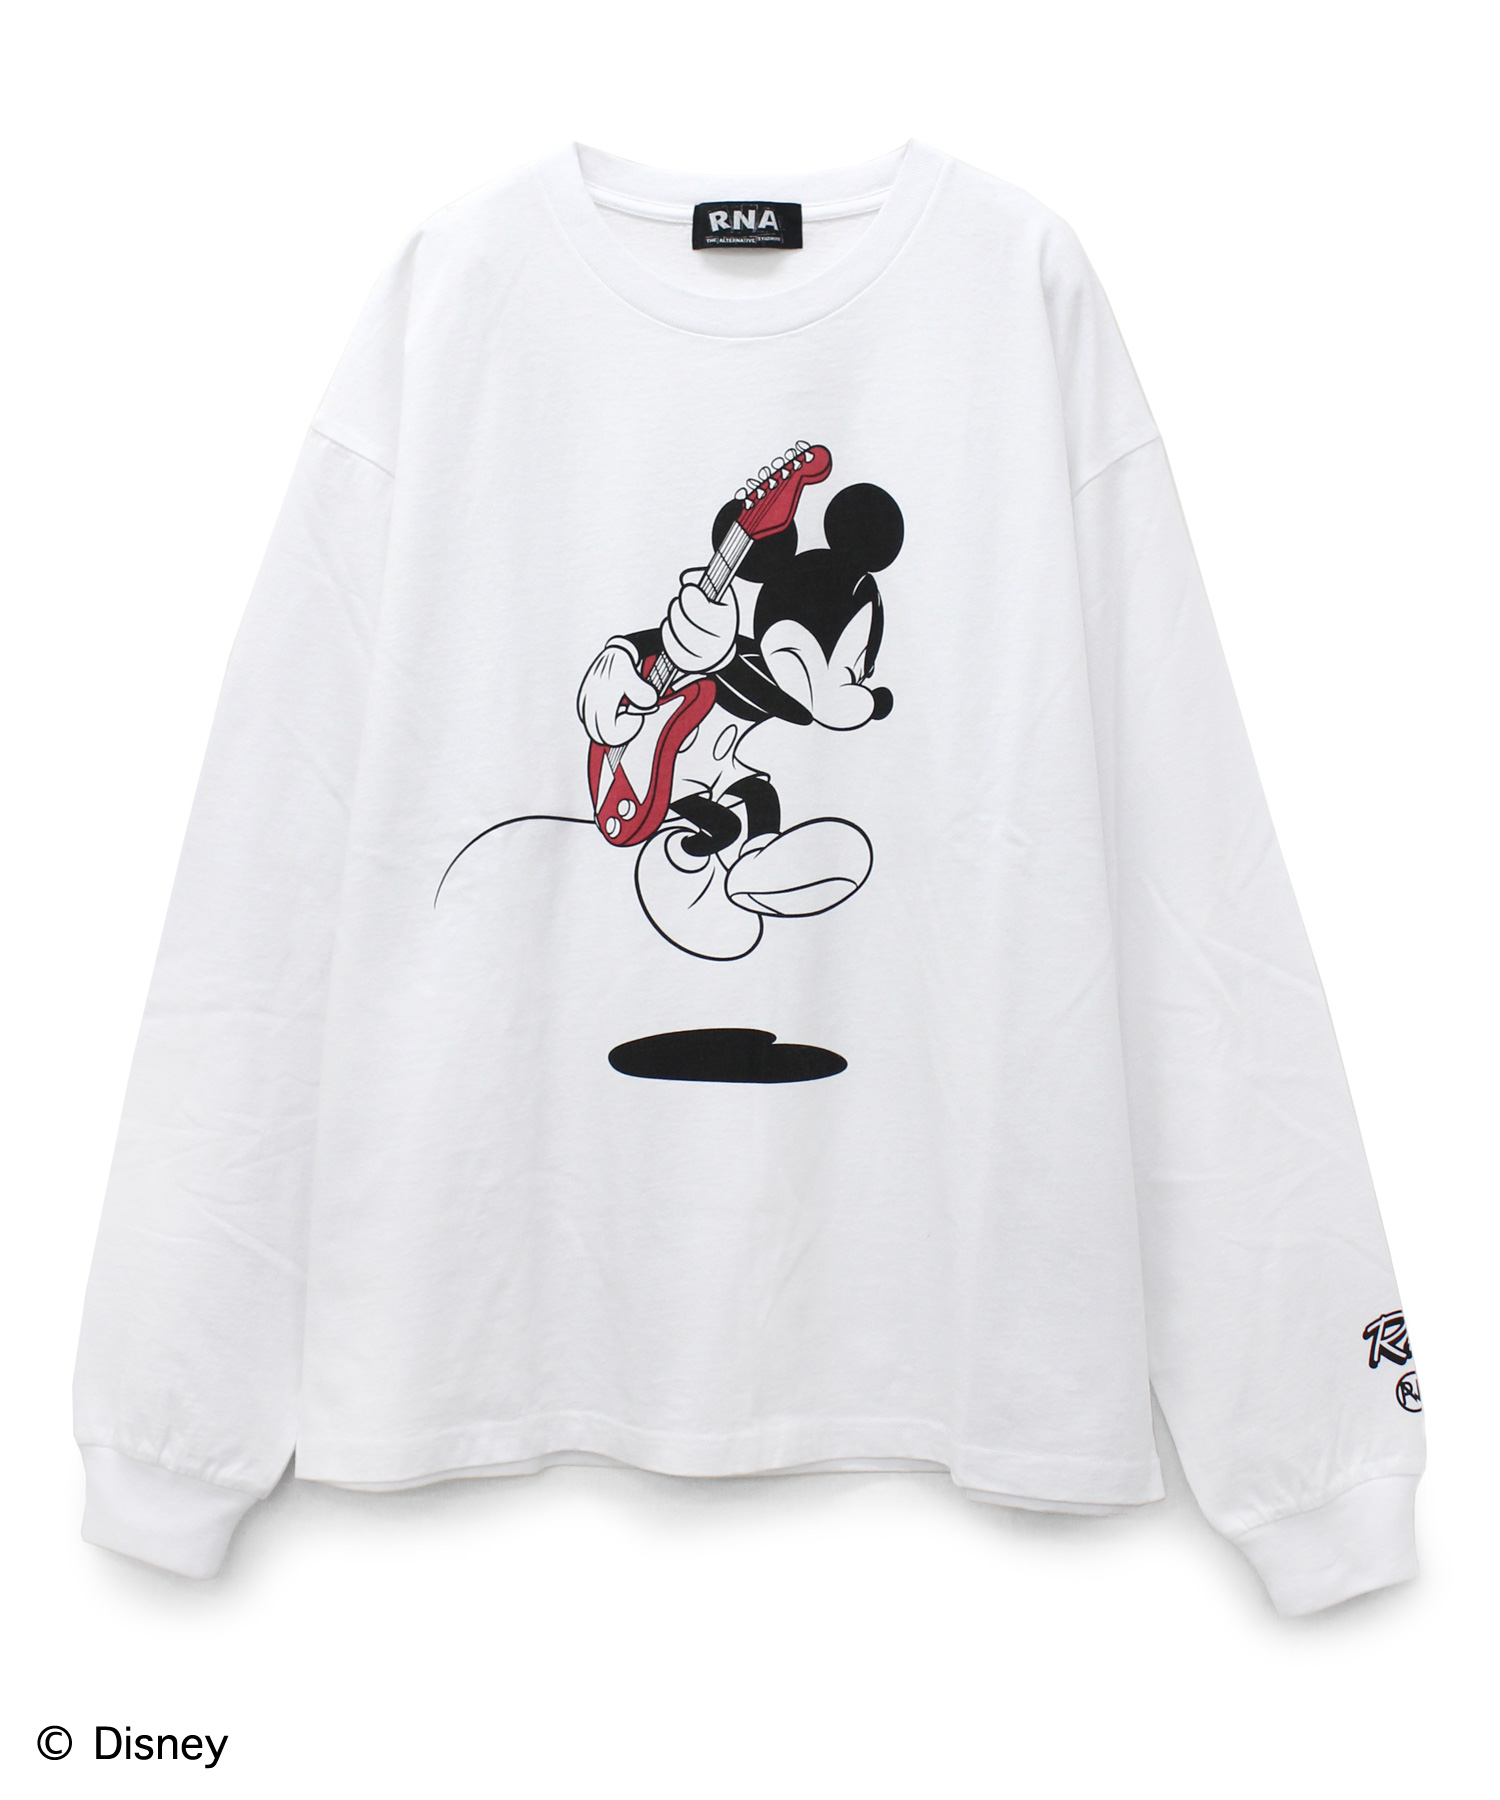 M1013 ROCK MICKEY MOUSE/ルーズロンT